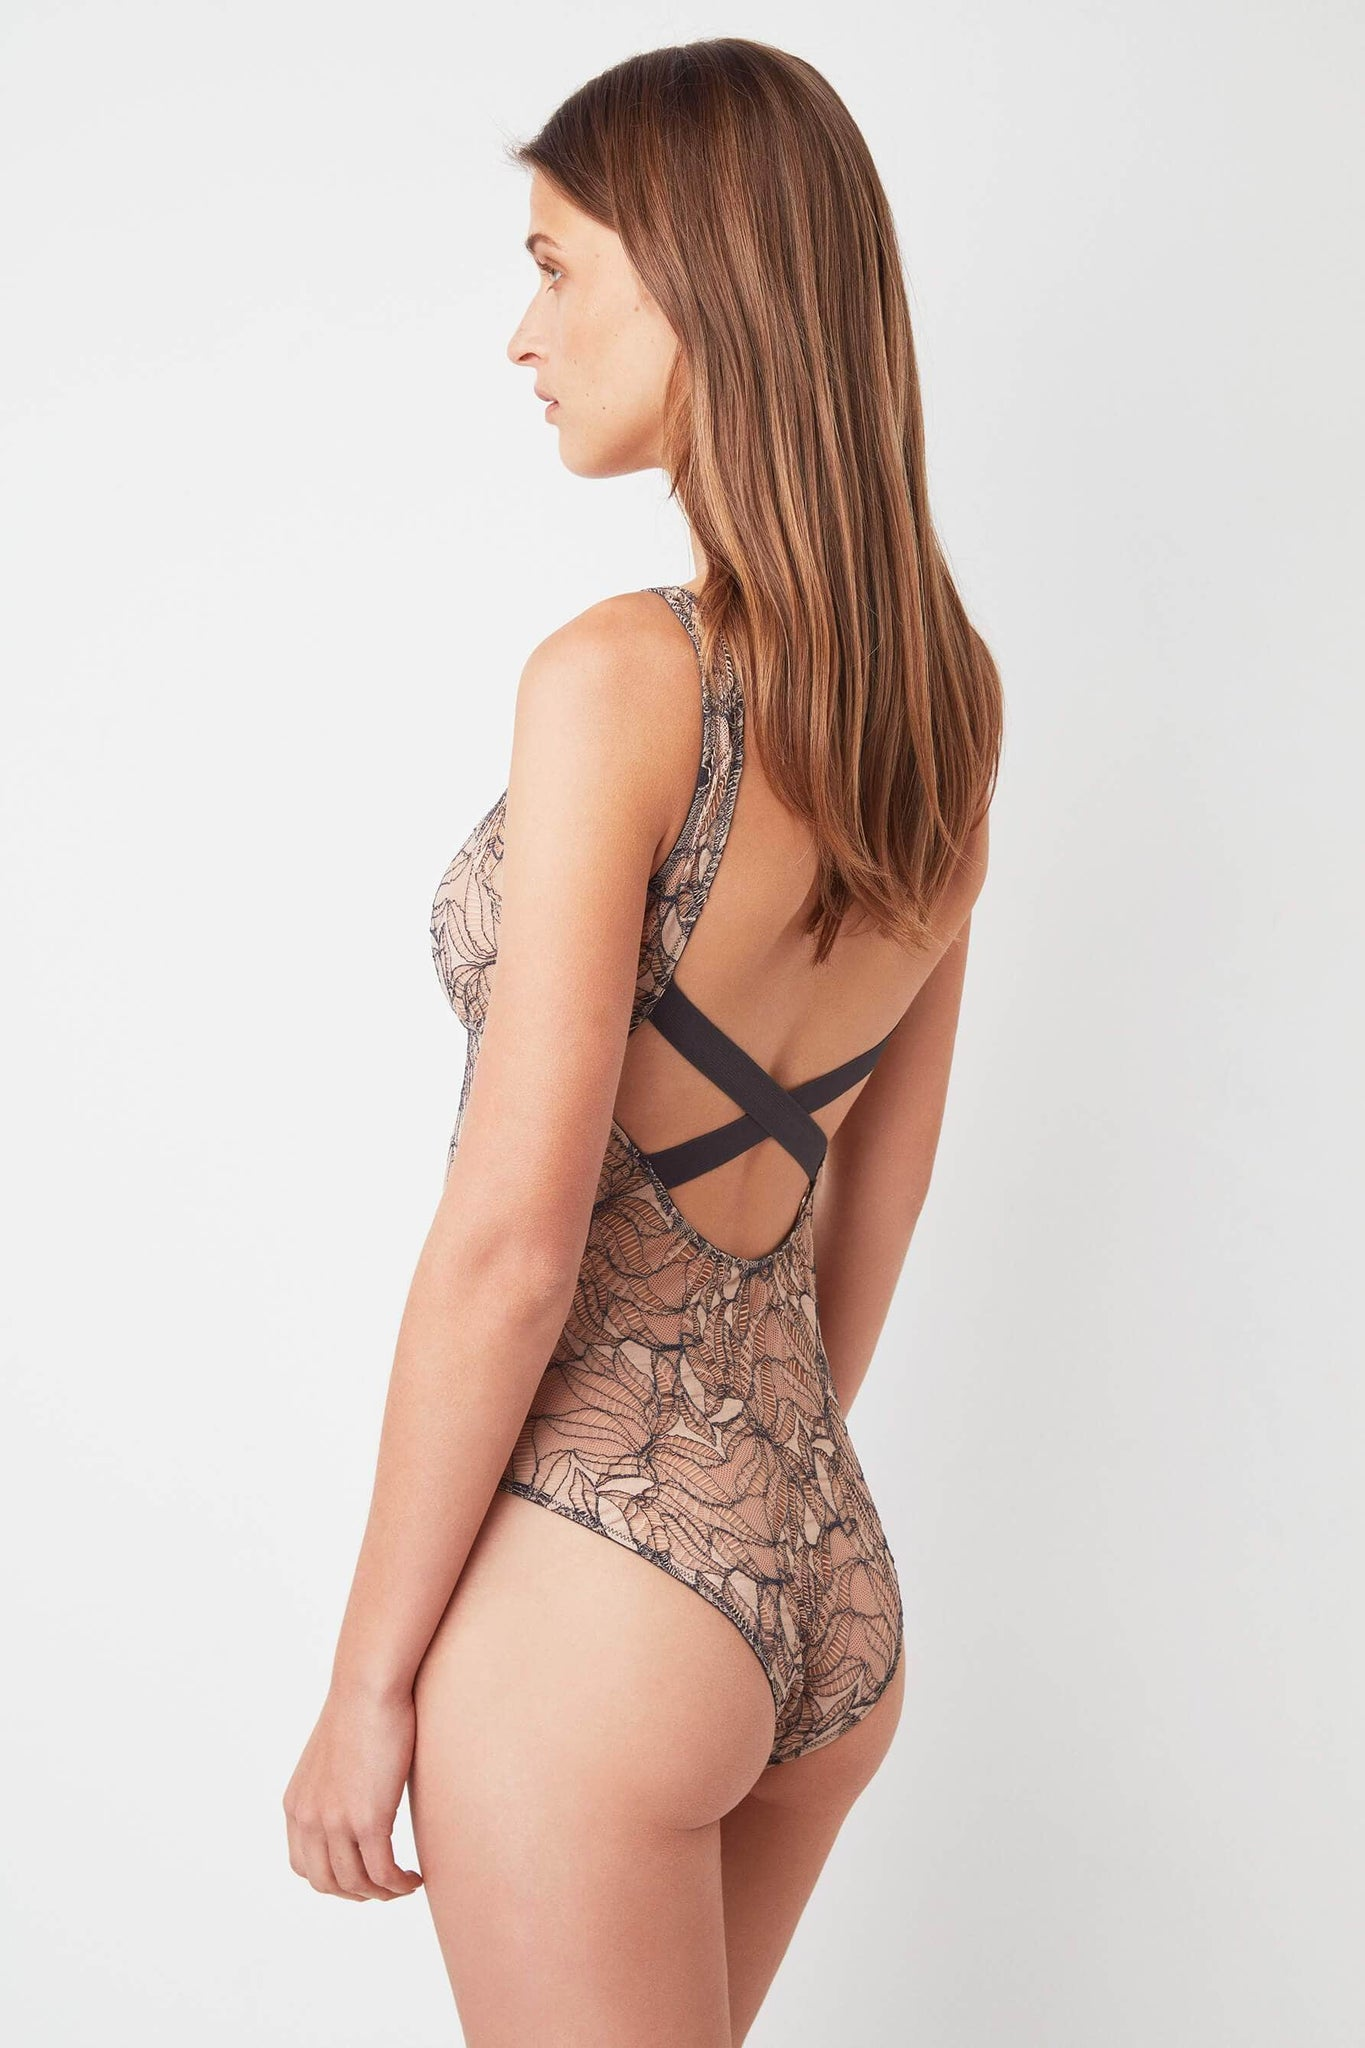 Powder/Slate Bohemian Lace Bodysuit from Else